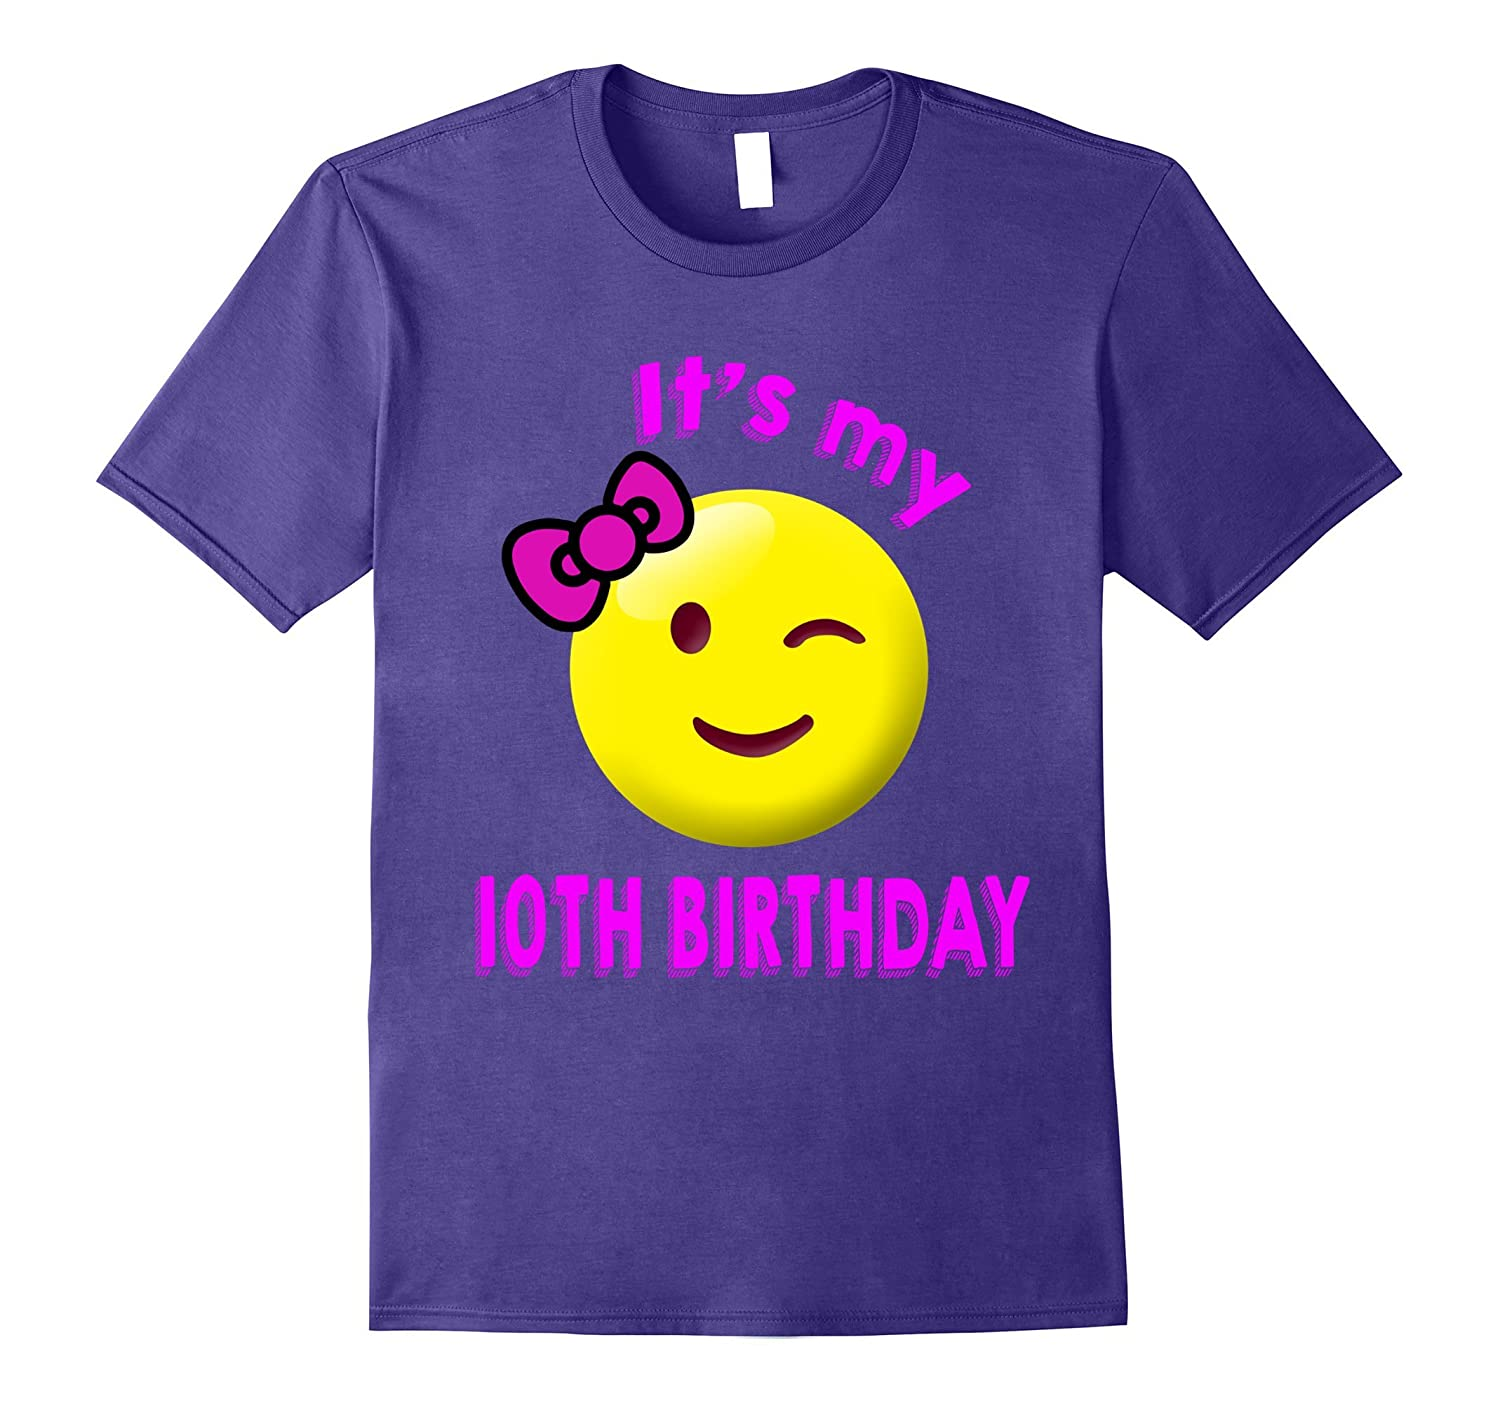 10th birthday emoji It's my 10th birthday-Rose